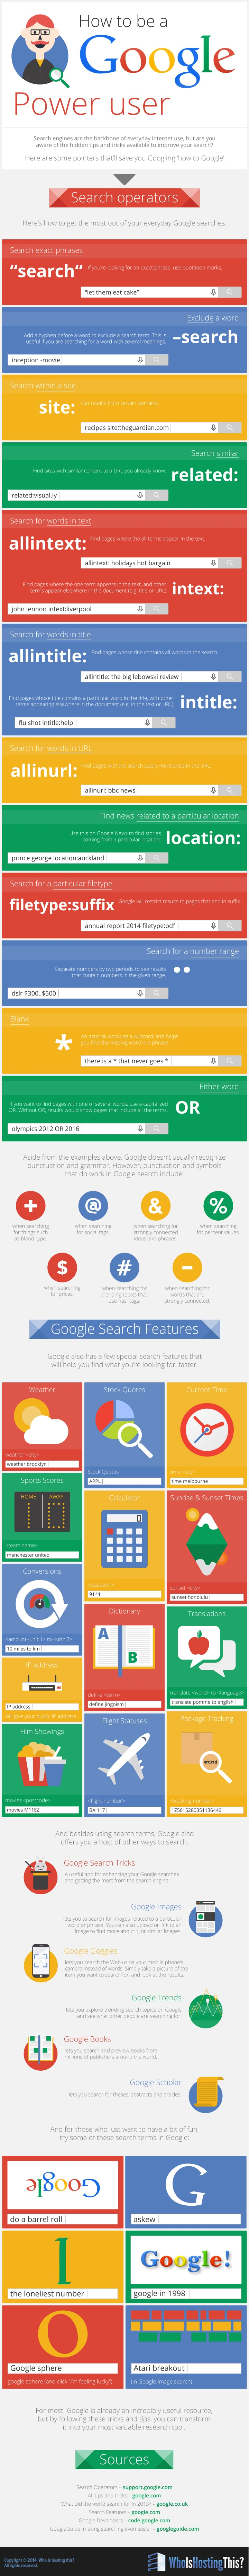 Google search operators infographic